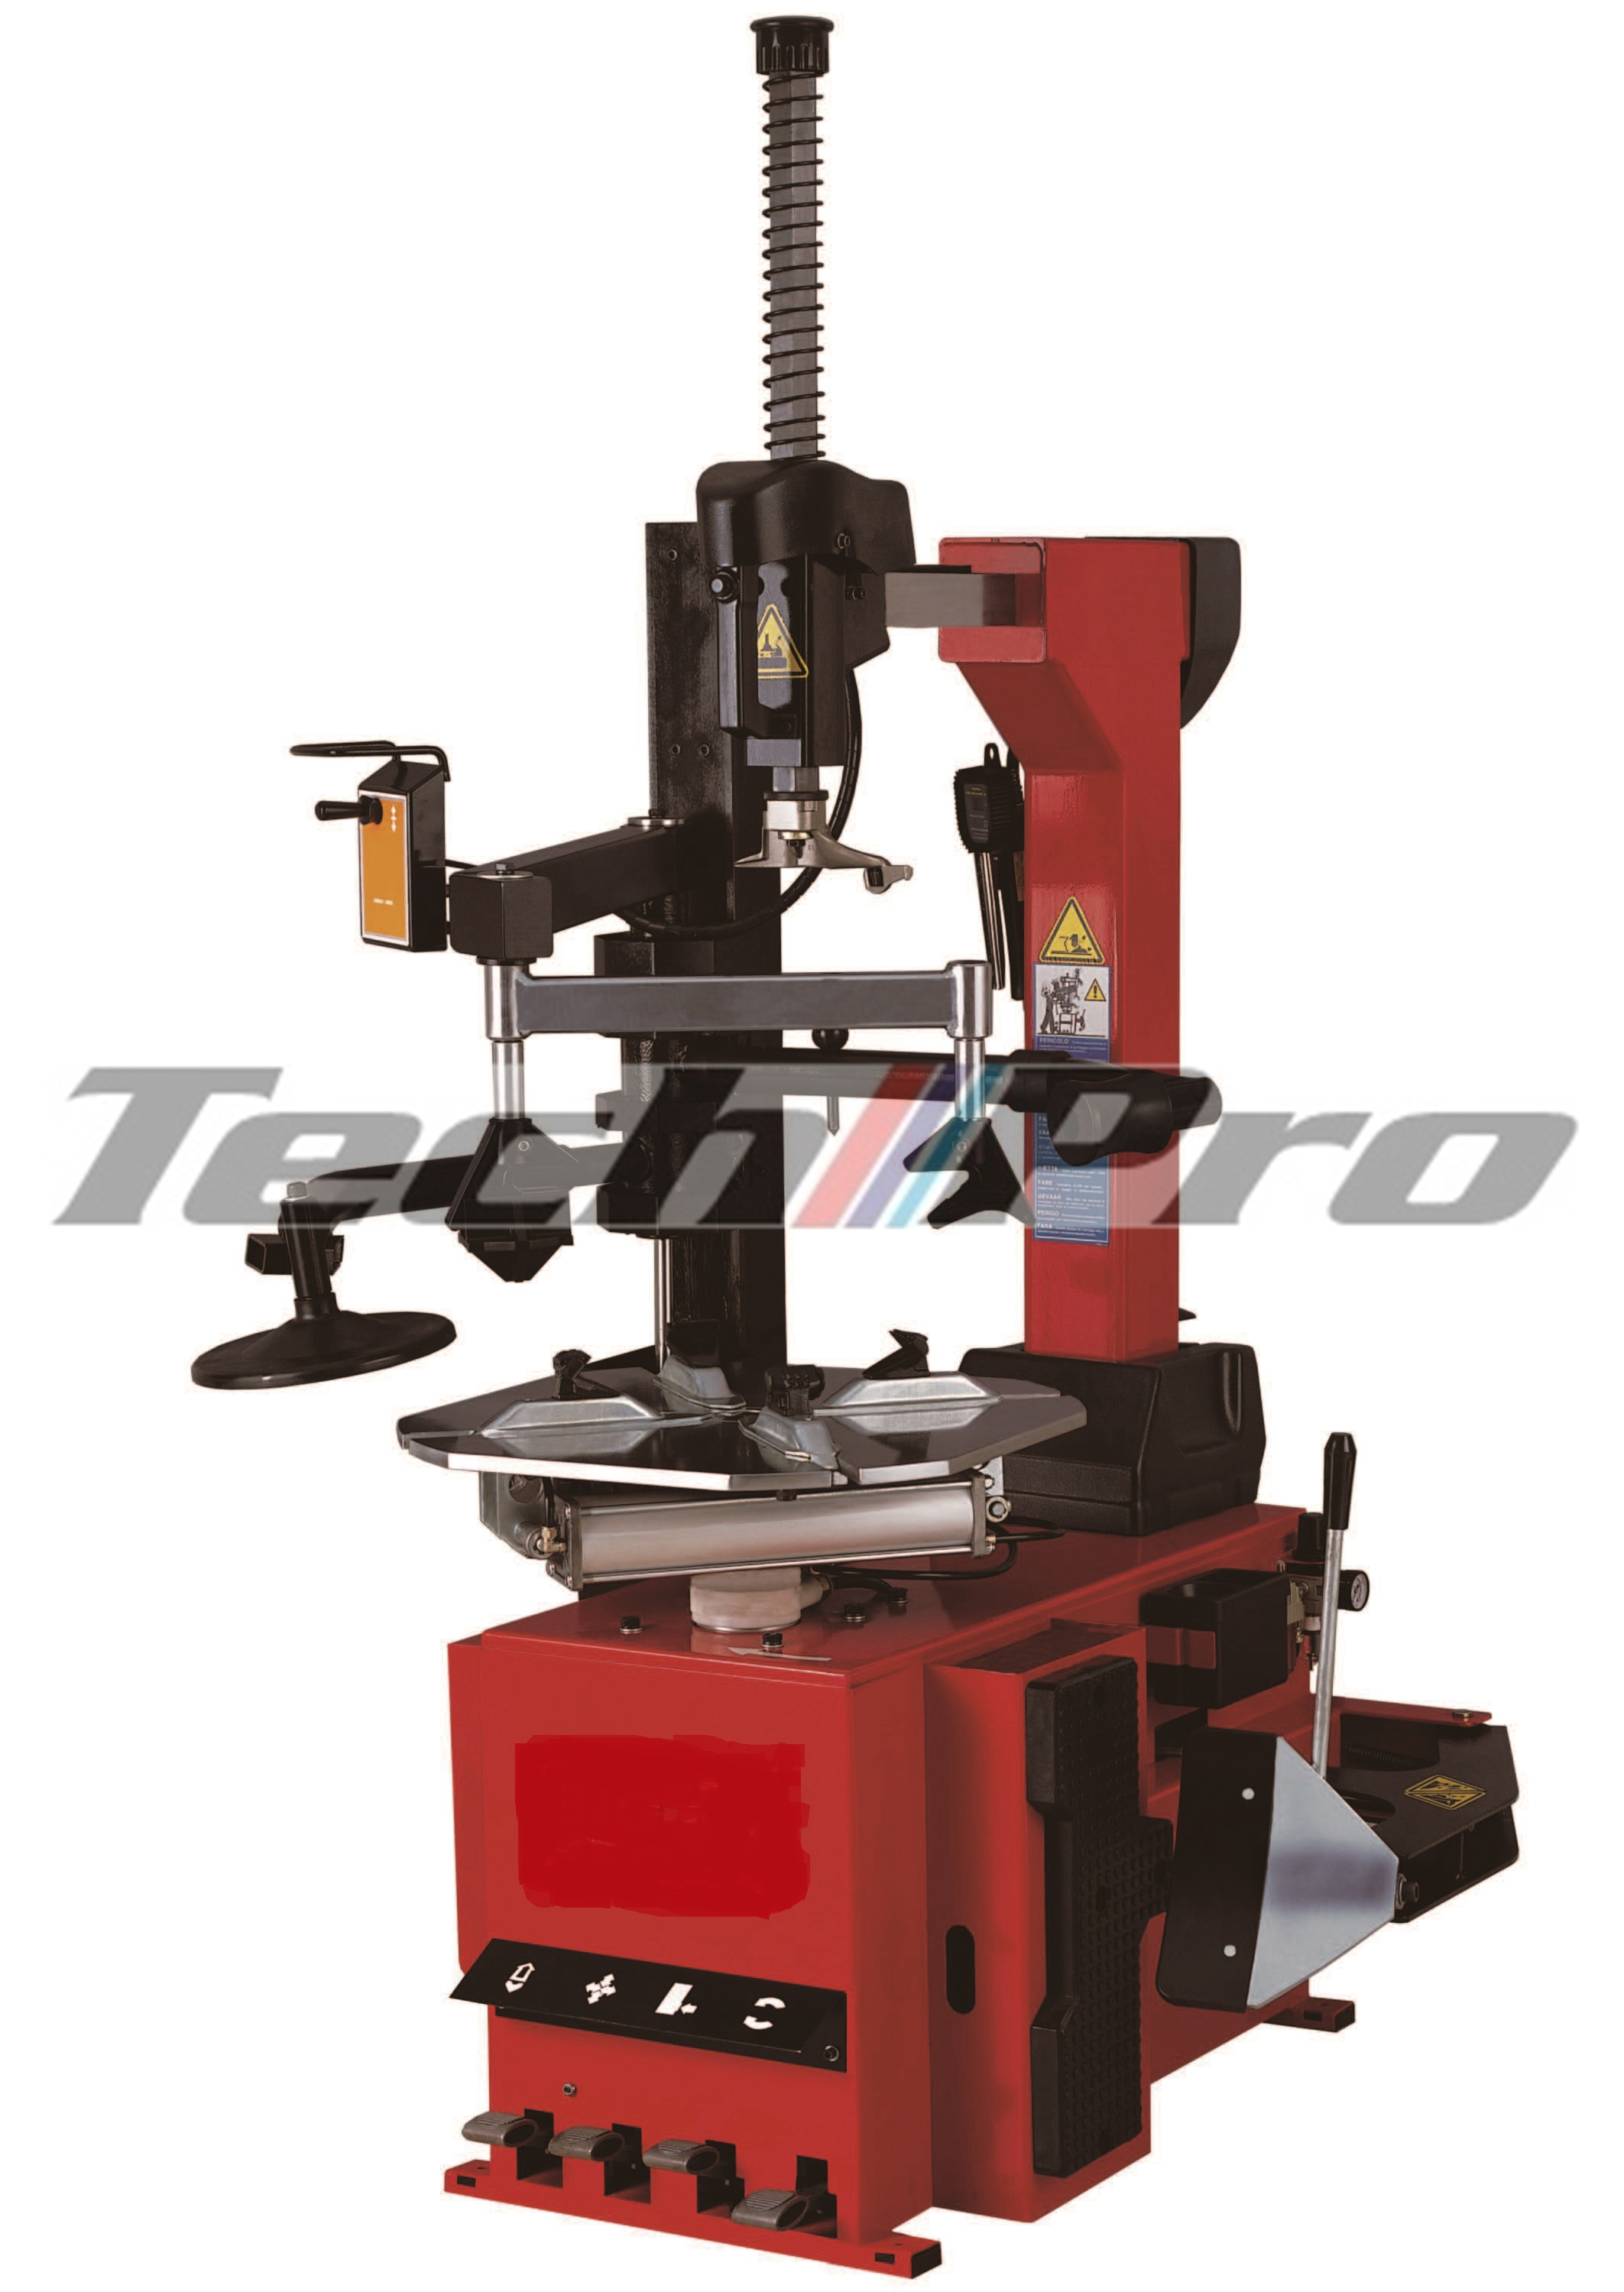 SE-050 Tire Changer Machine - 237